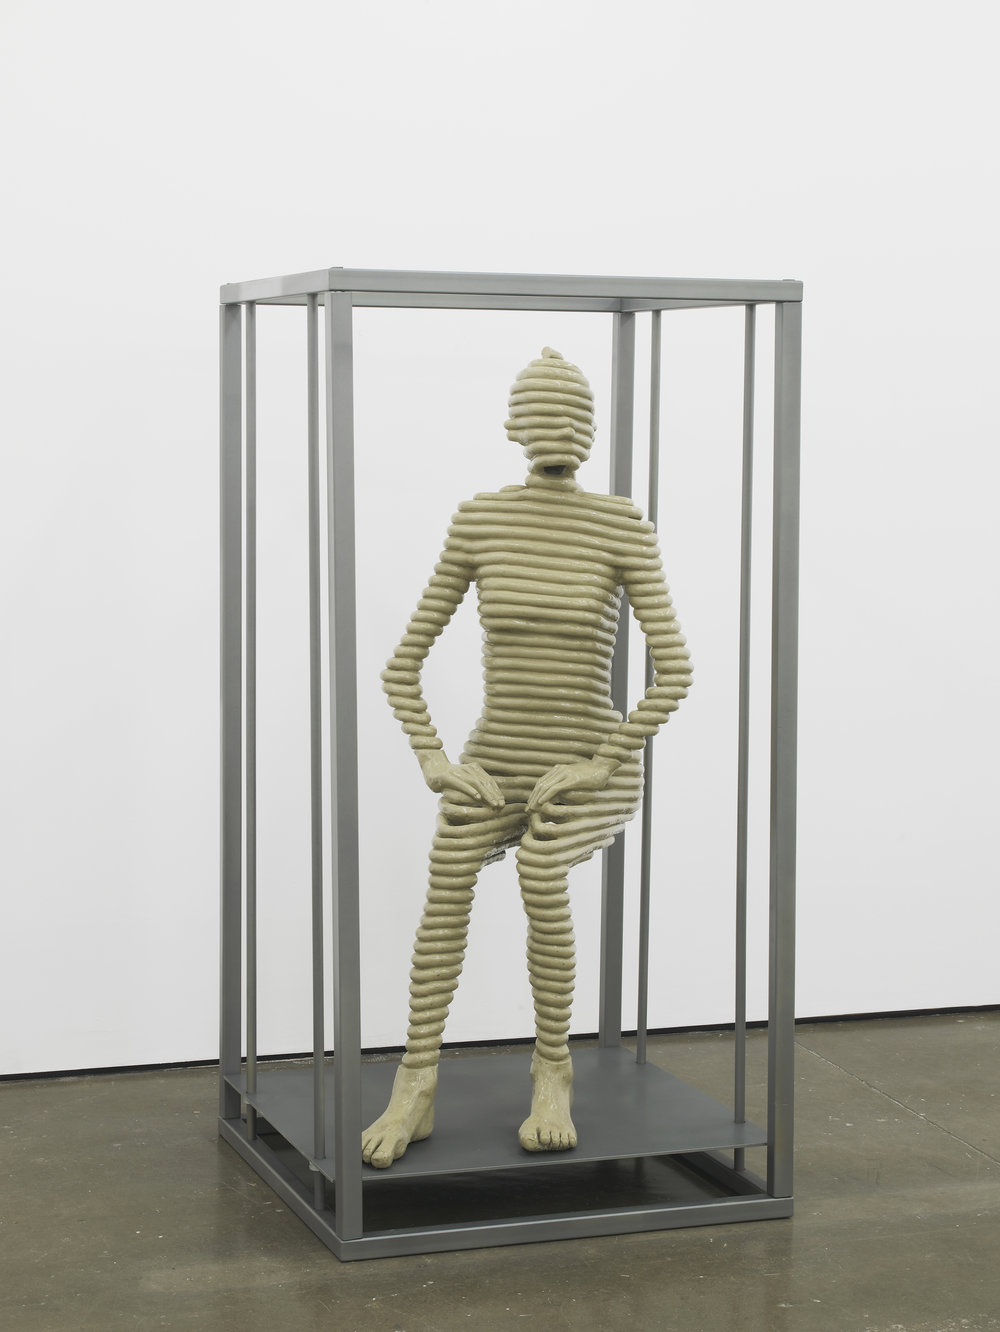 Sensor Series No.2 (Grace sitting) 2016 Resin, clay pigment, steel and paint 170 x 90 x 90 cm / 67 x 35.4 x 35.4 in Ed. 1/3 +1AP